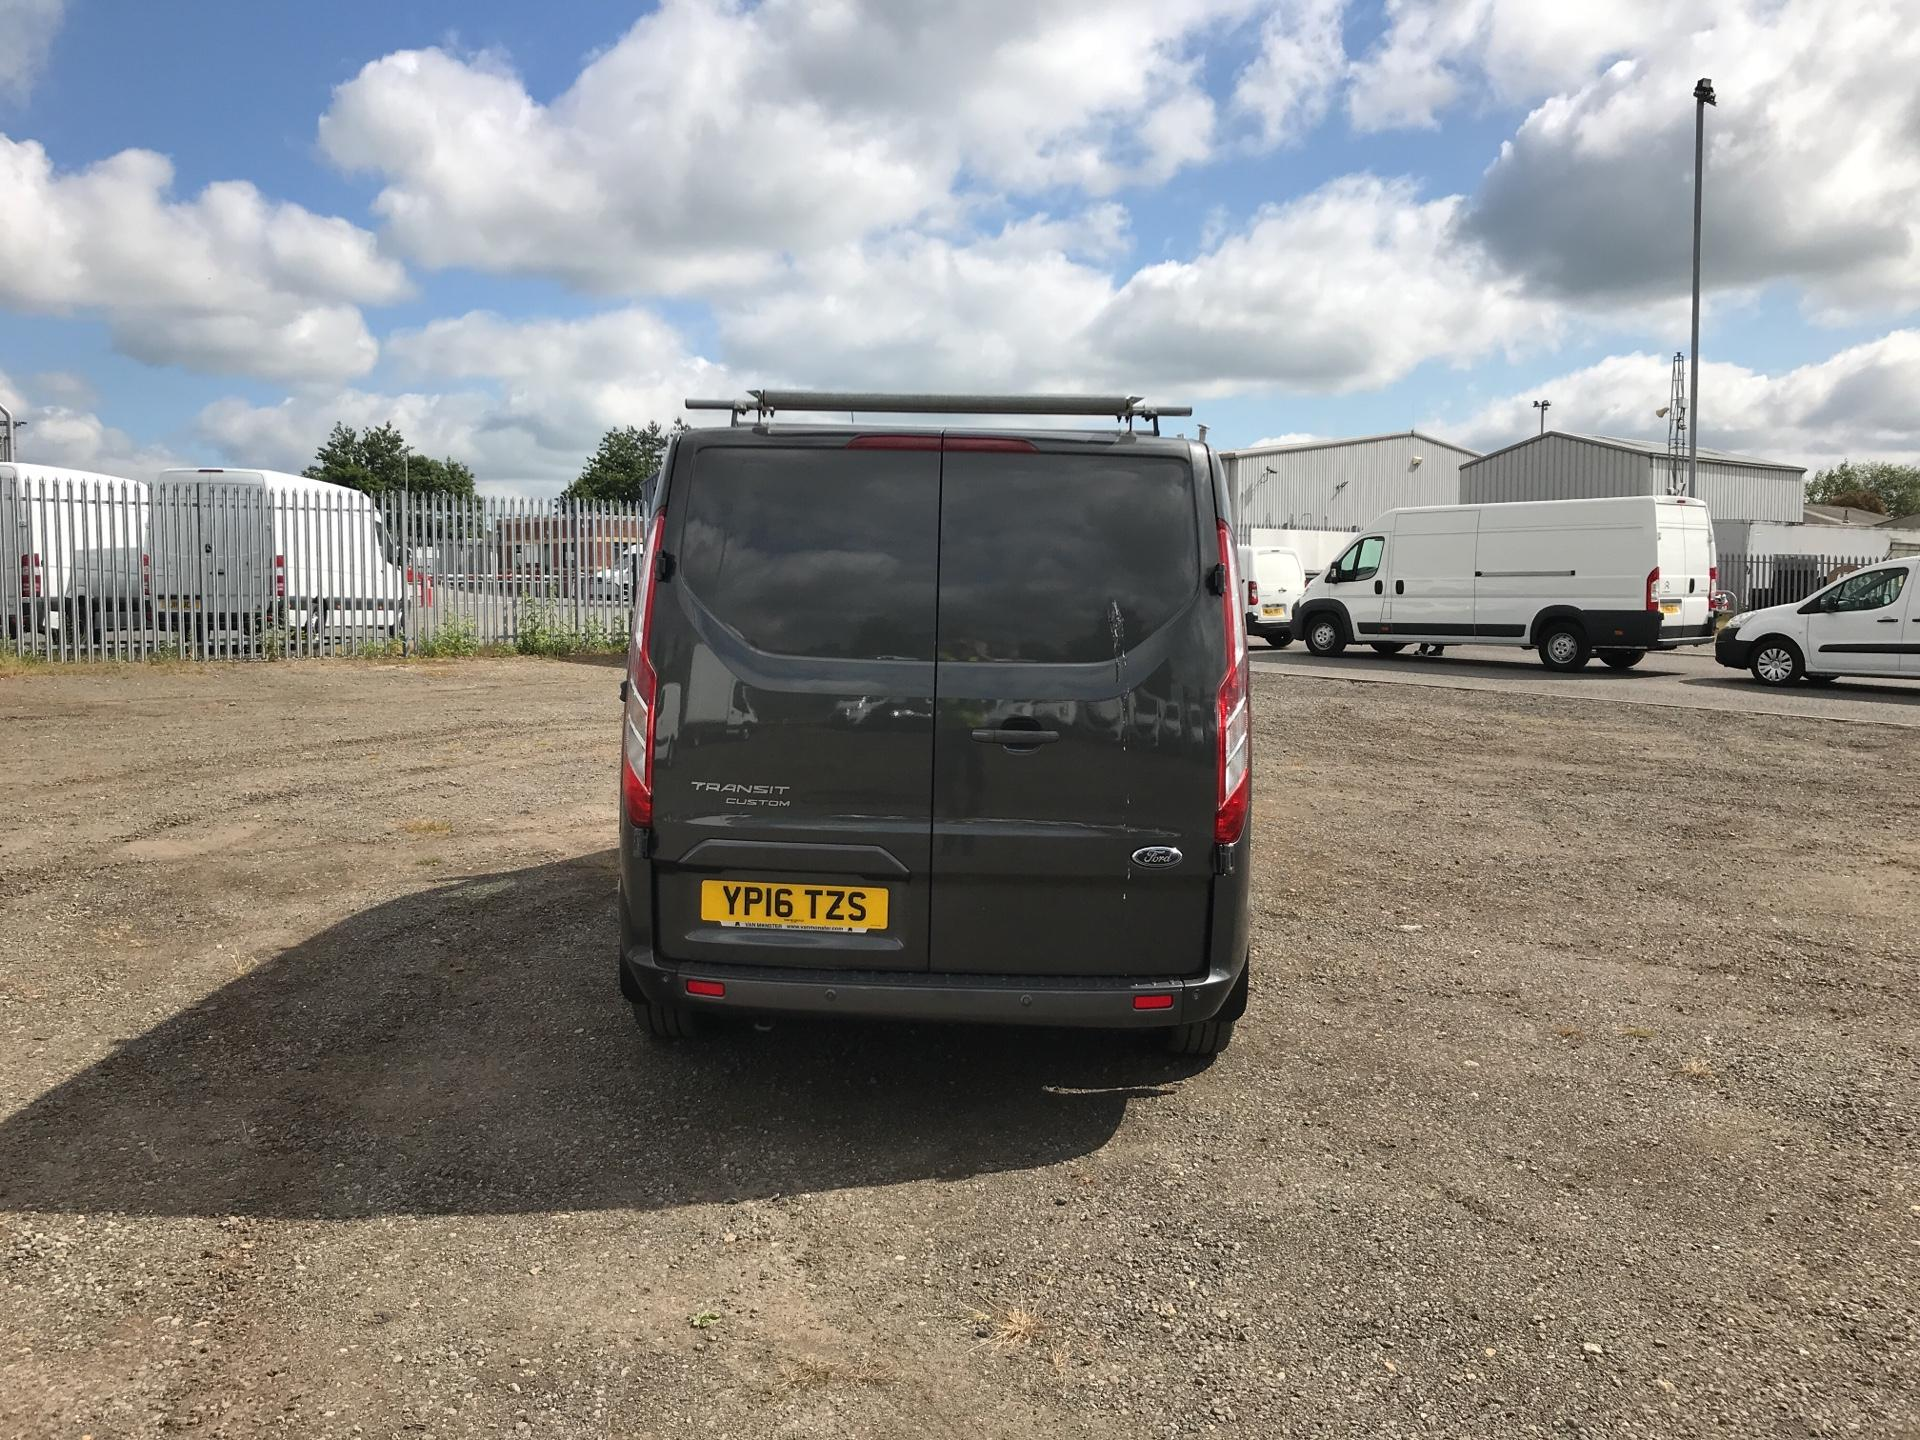 2016 Ford Transit Custom 290 L1 DIESEL FWD 2.2 TDCI 125PS LOW ROOF LIMITED VAN EURO 5 (YP16TZS) Image 4